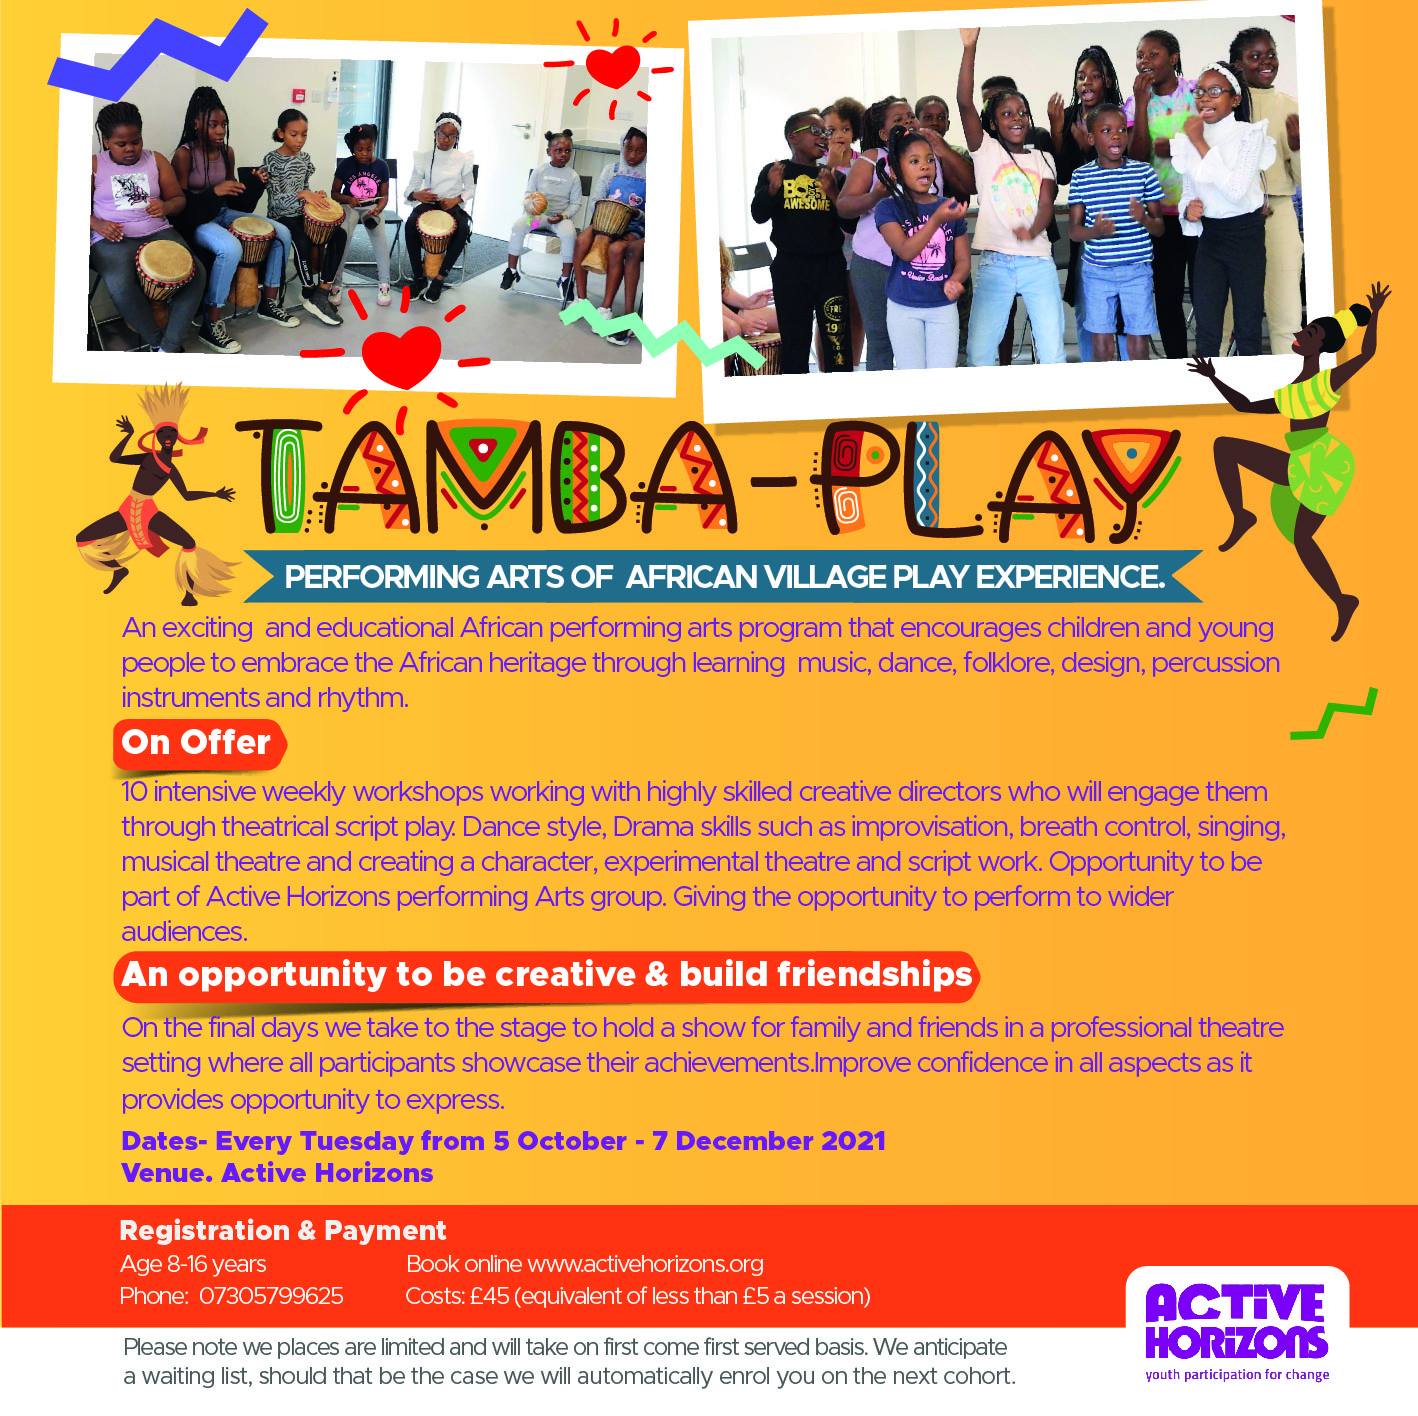 Tamba Play- PERFORMING ARTS OF AFRICAN VILLAGE PLAY EXPERIENCE